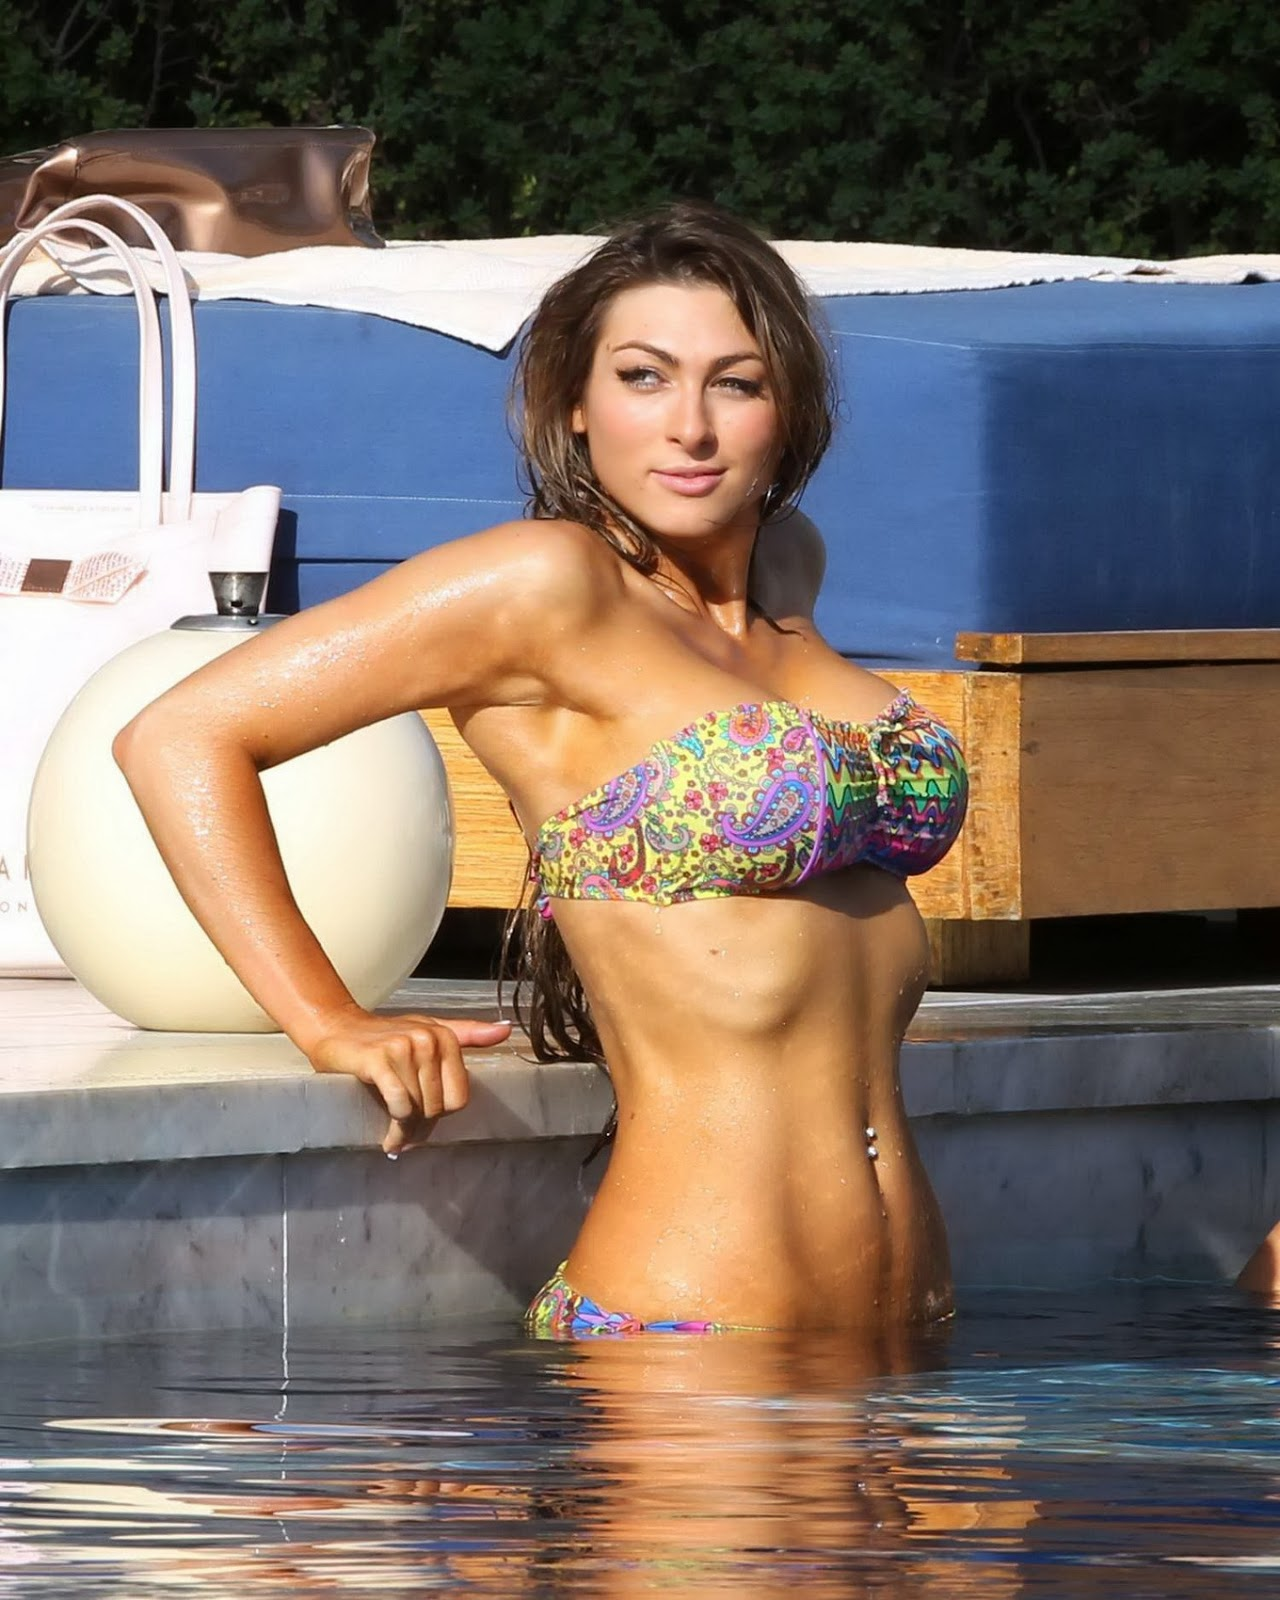 Luisa Zissman showing off her remarkable assets in tube colorful bikini at a pool in Spain